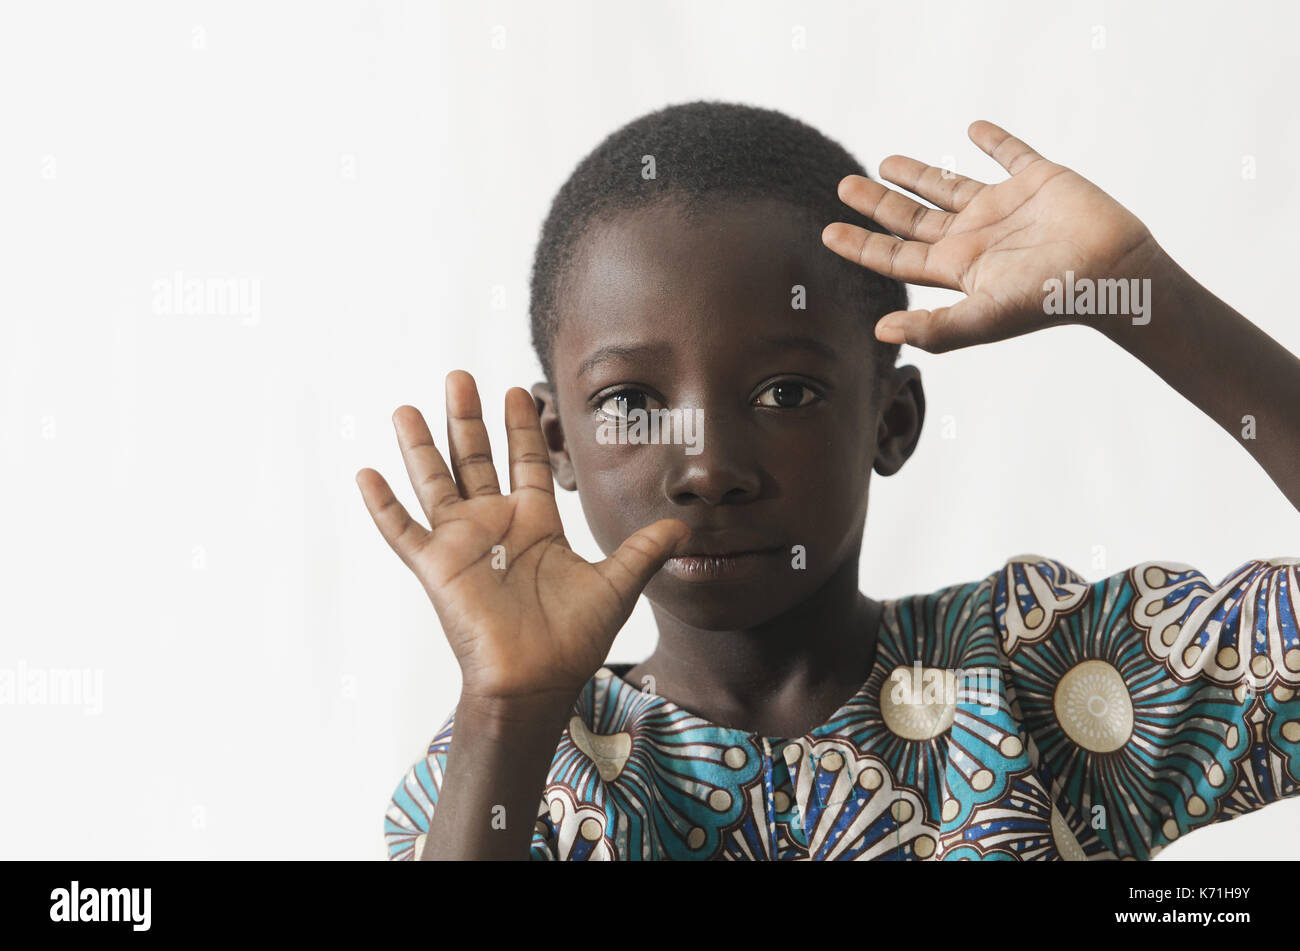 African child protecting his face with his hands, isolated on white - Stock Image